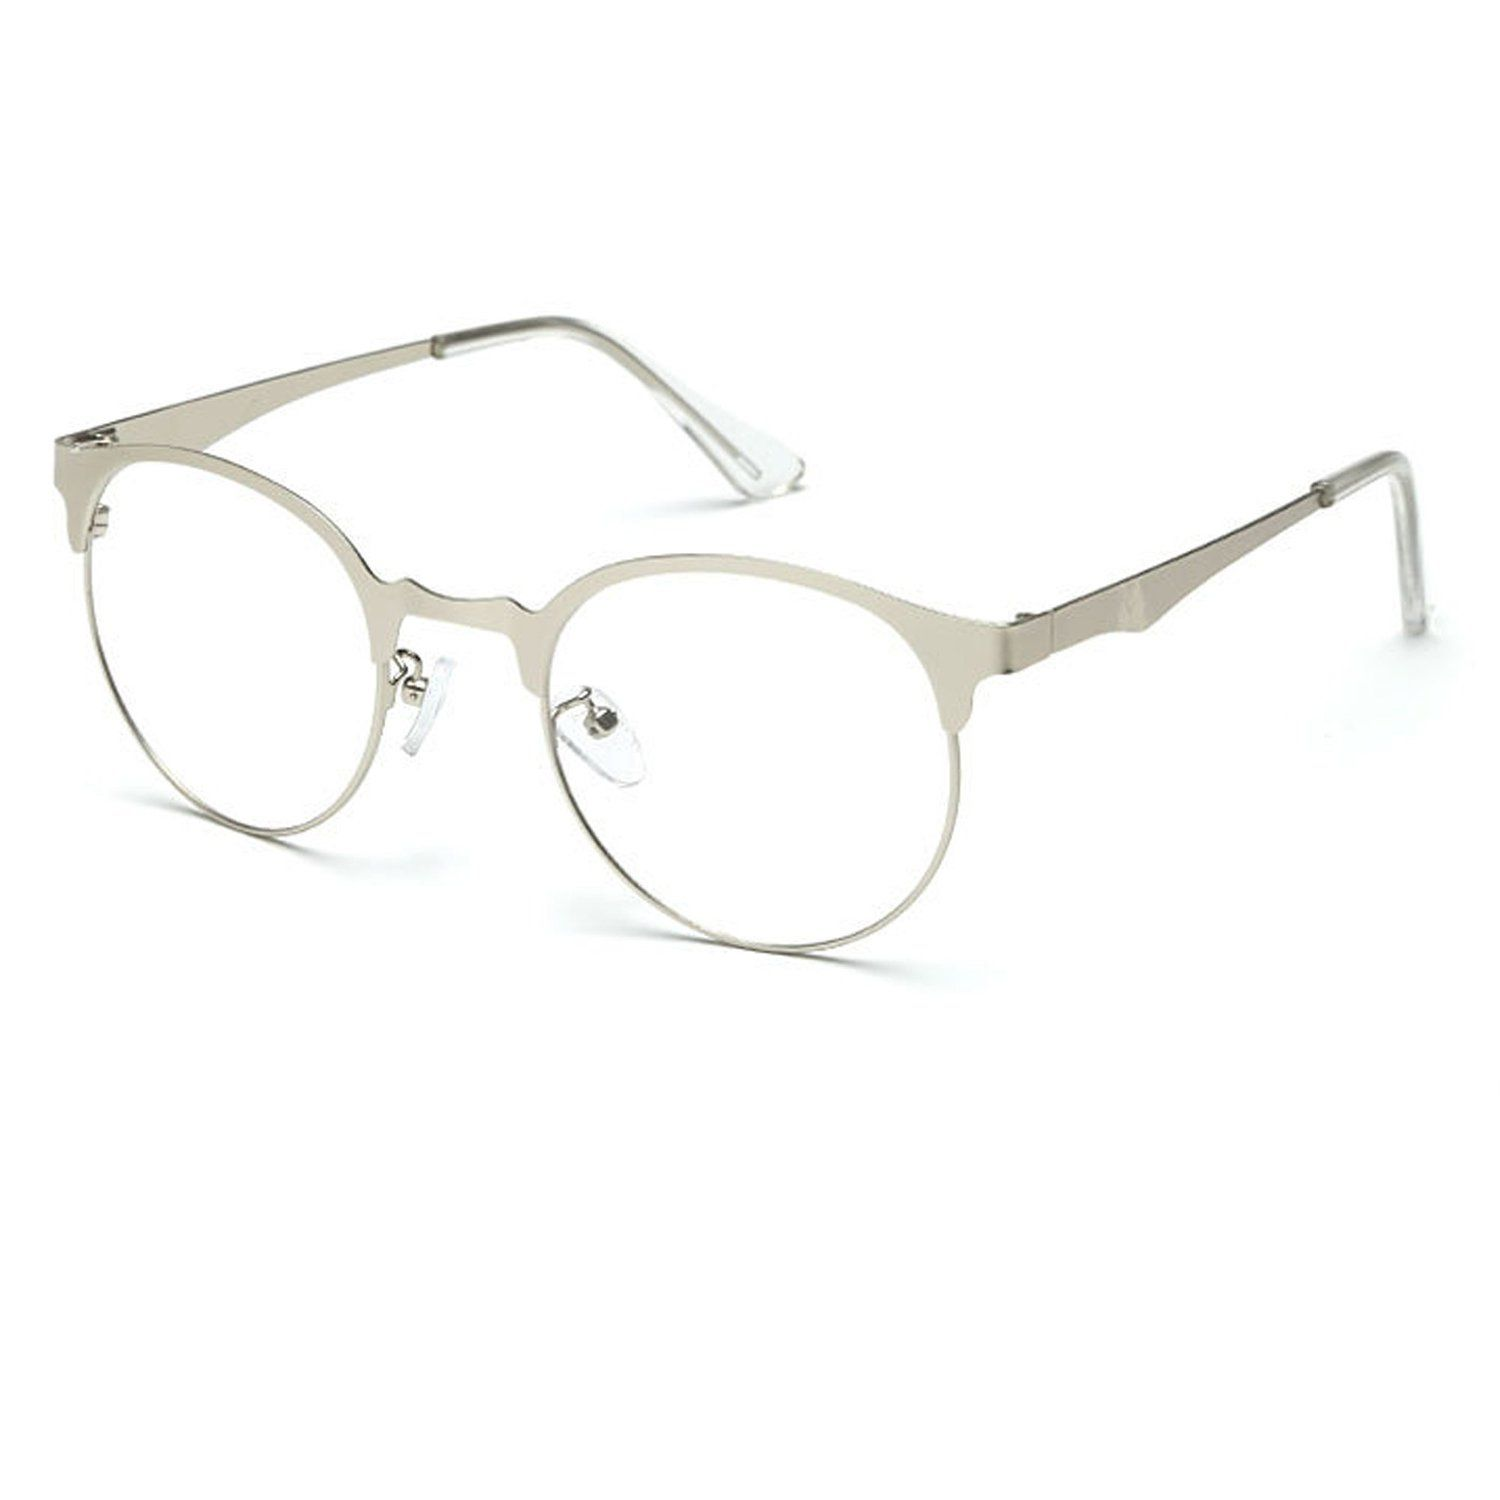 32acdd464981 Amazon.com: TIJN New Round Metal Non-prescription Glasses Frame with Clear  Lens: Sports & Outdoors